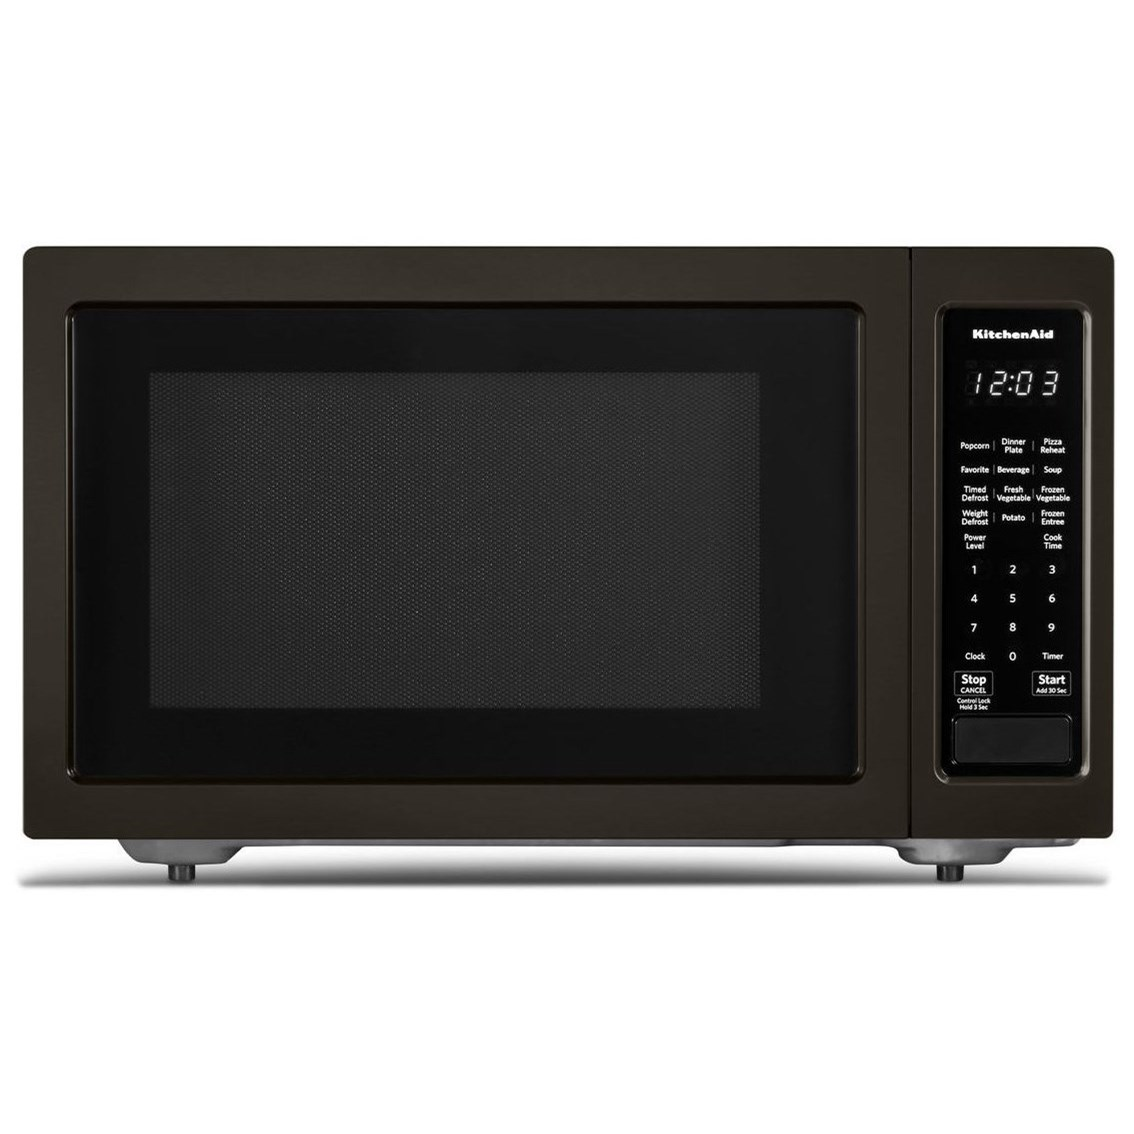 Kitchenaid Microwaves 21 3 4 Countertop Microwave Oven 1200w Item